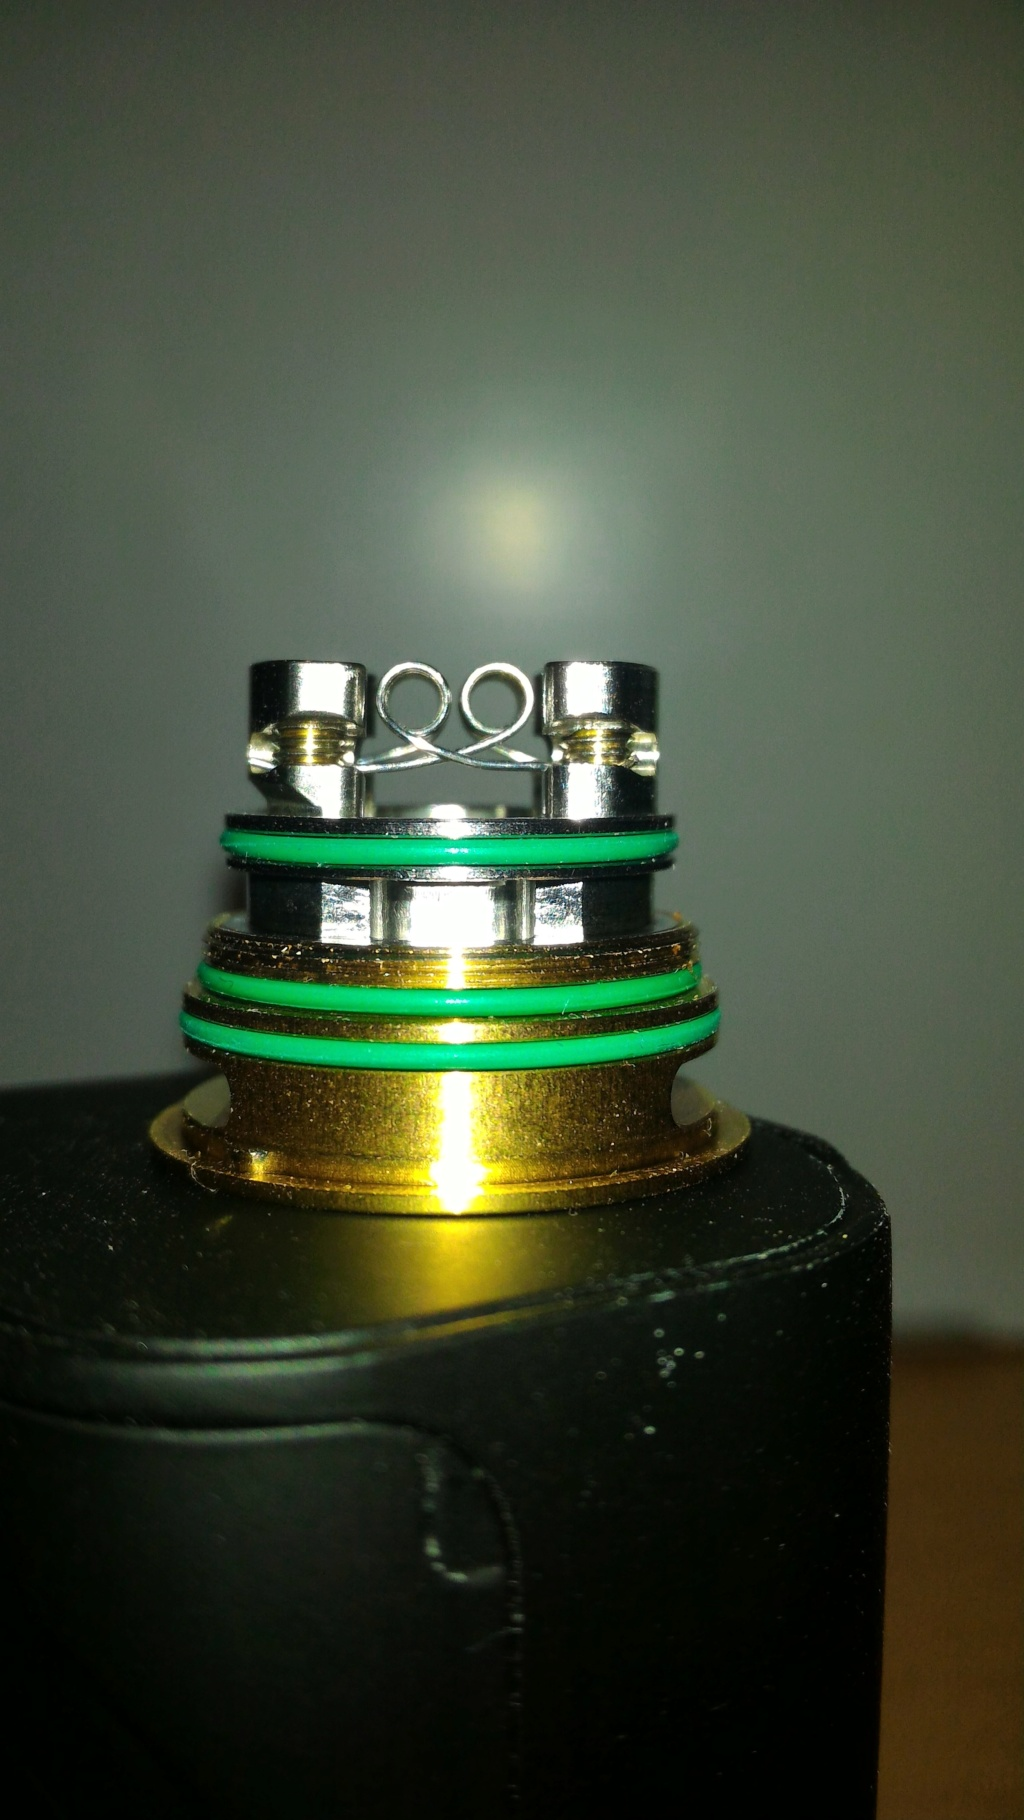 asmodus lustro zesthia avec double coils photo 0210